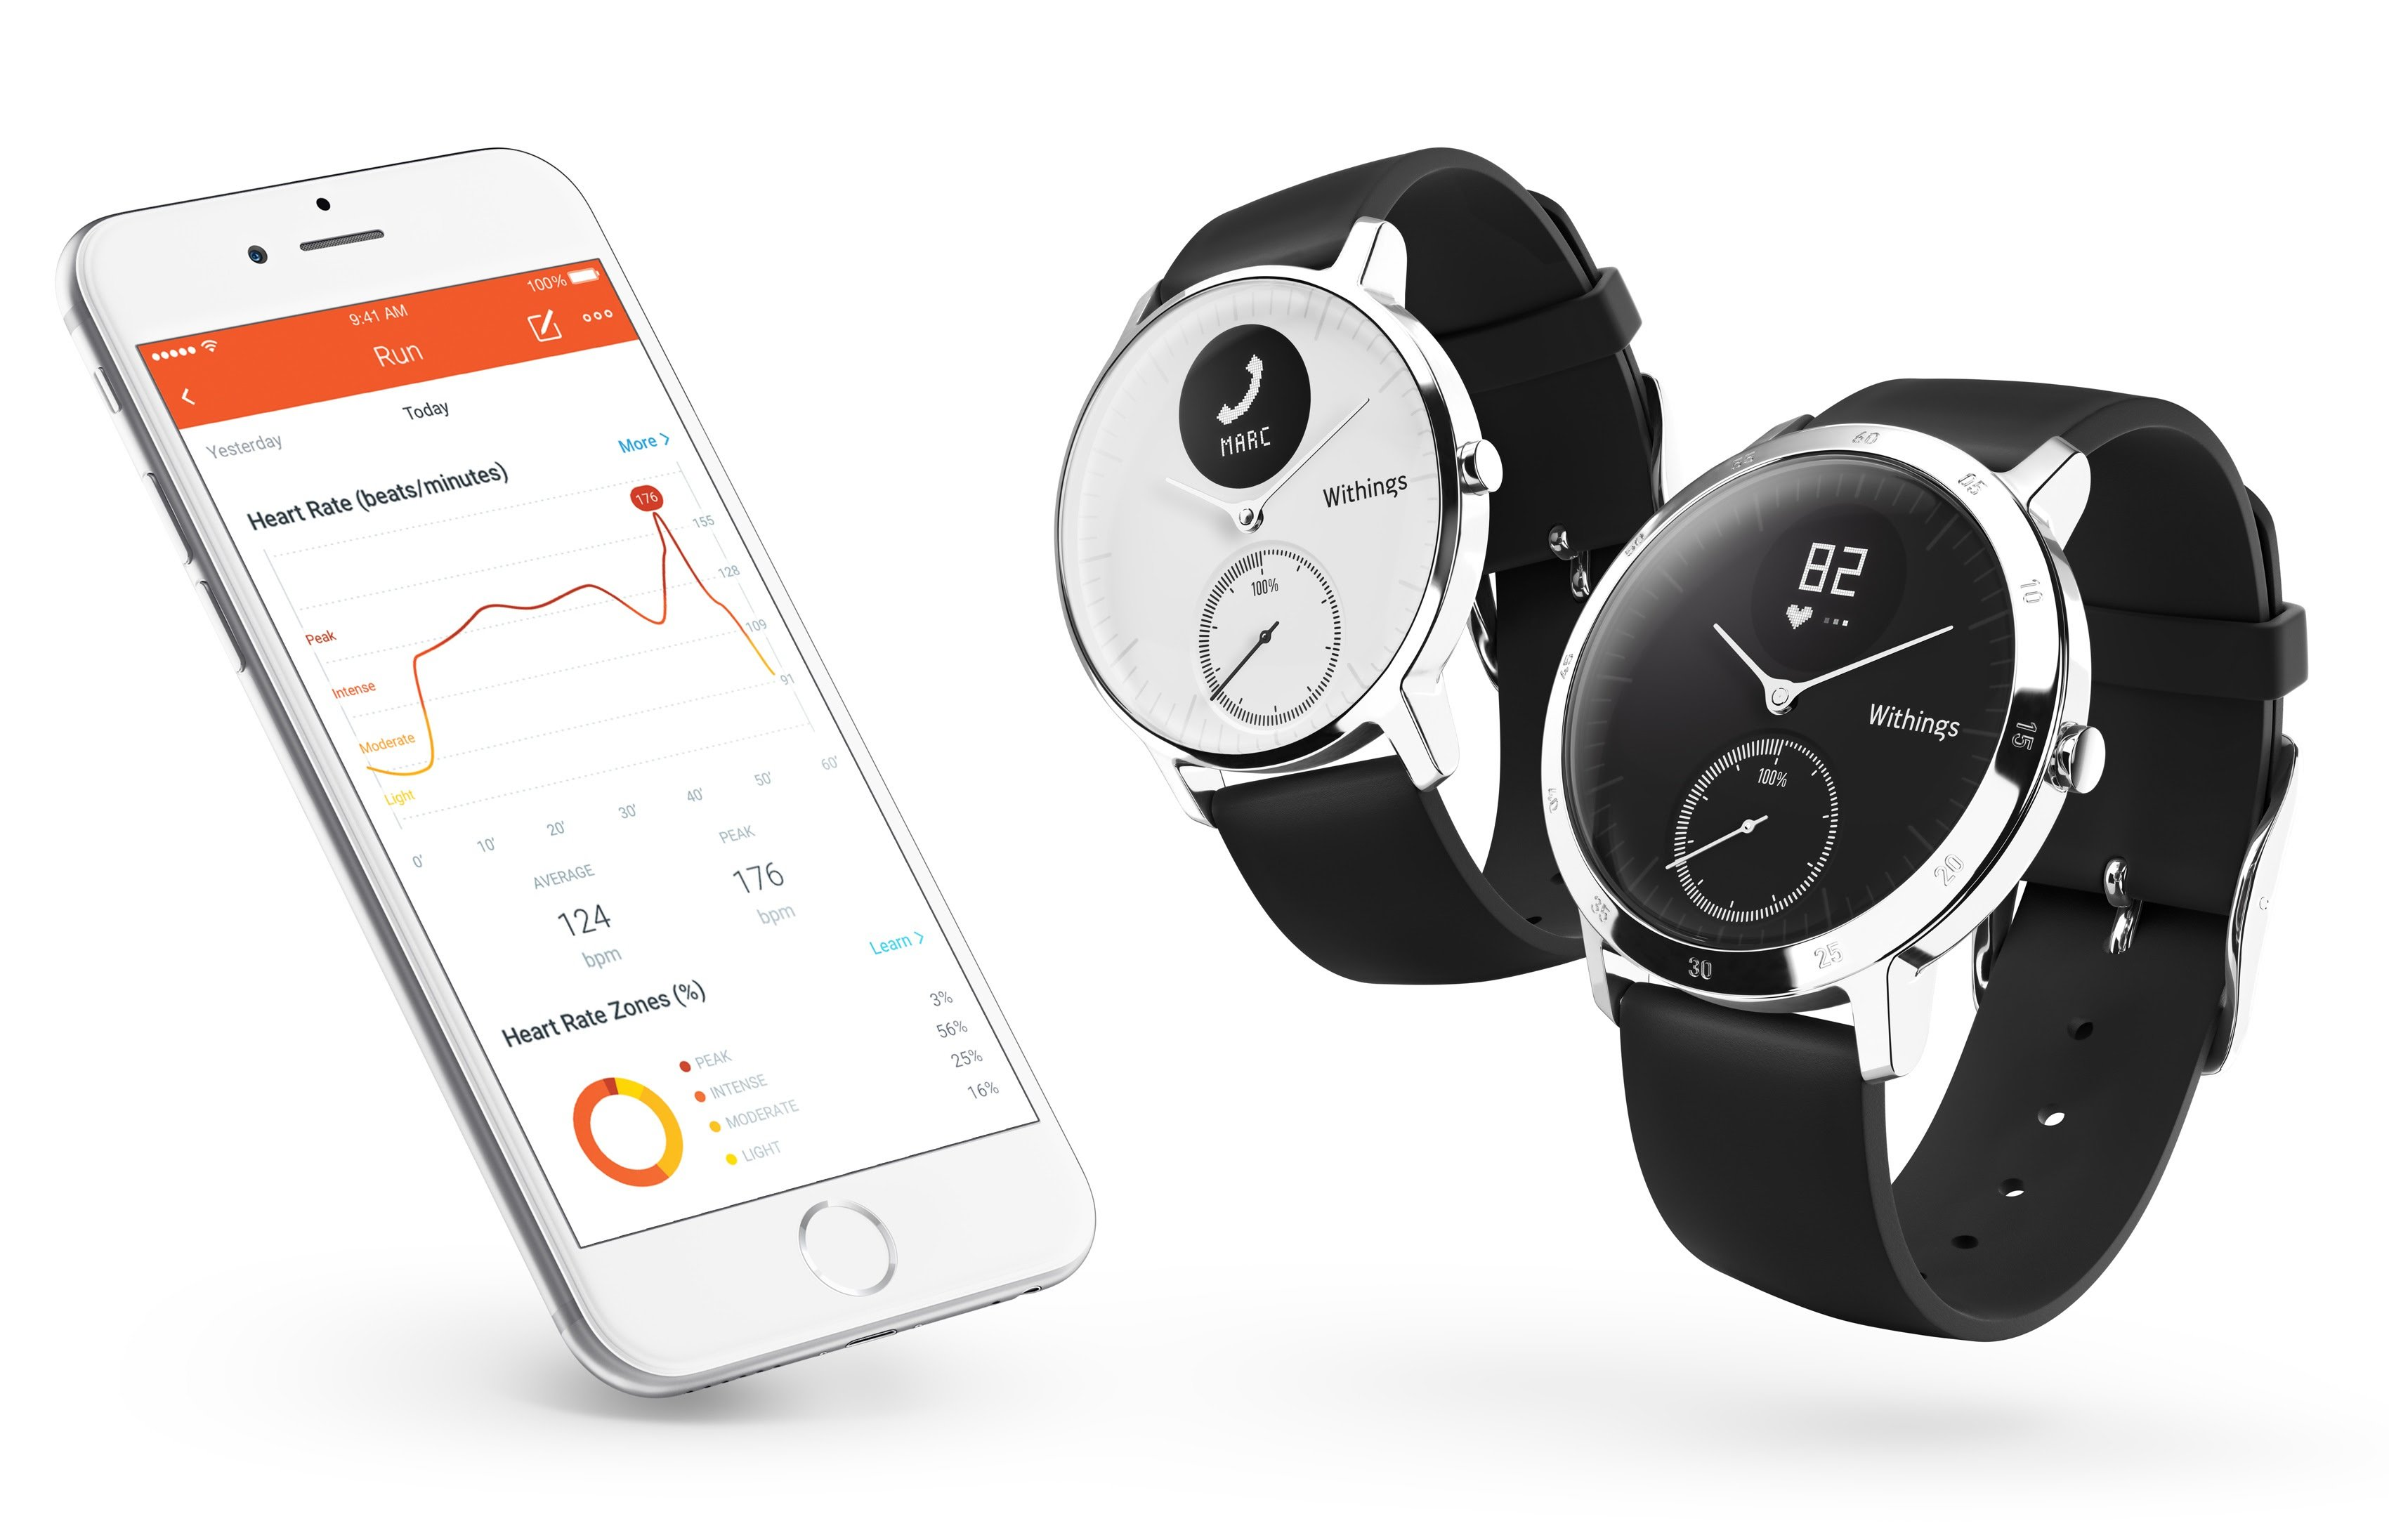 Withings introduce il rilevamento del battito cardiaco con lo smartwatch Steel HR